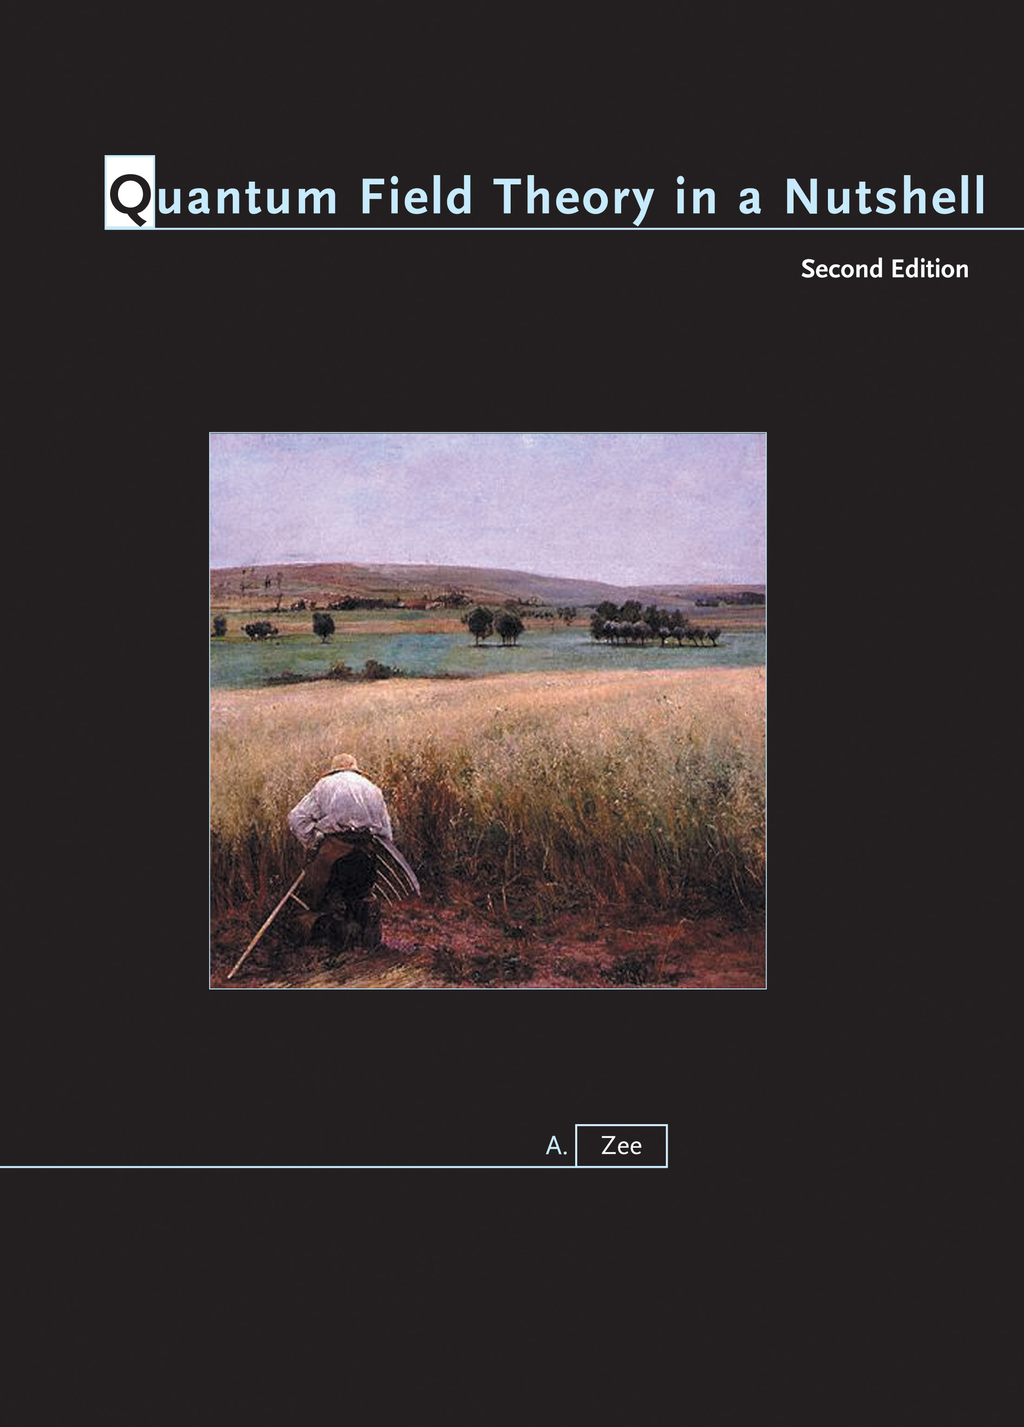 Quantum Field Theory in a Nutshell (Second Edition)